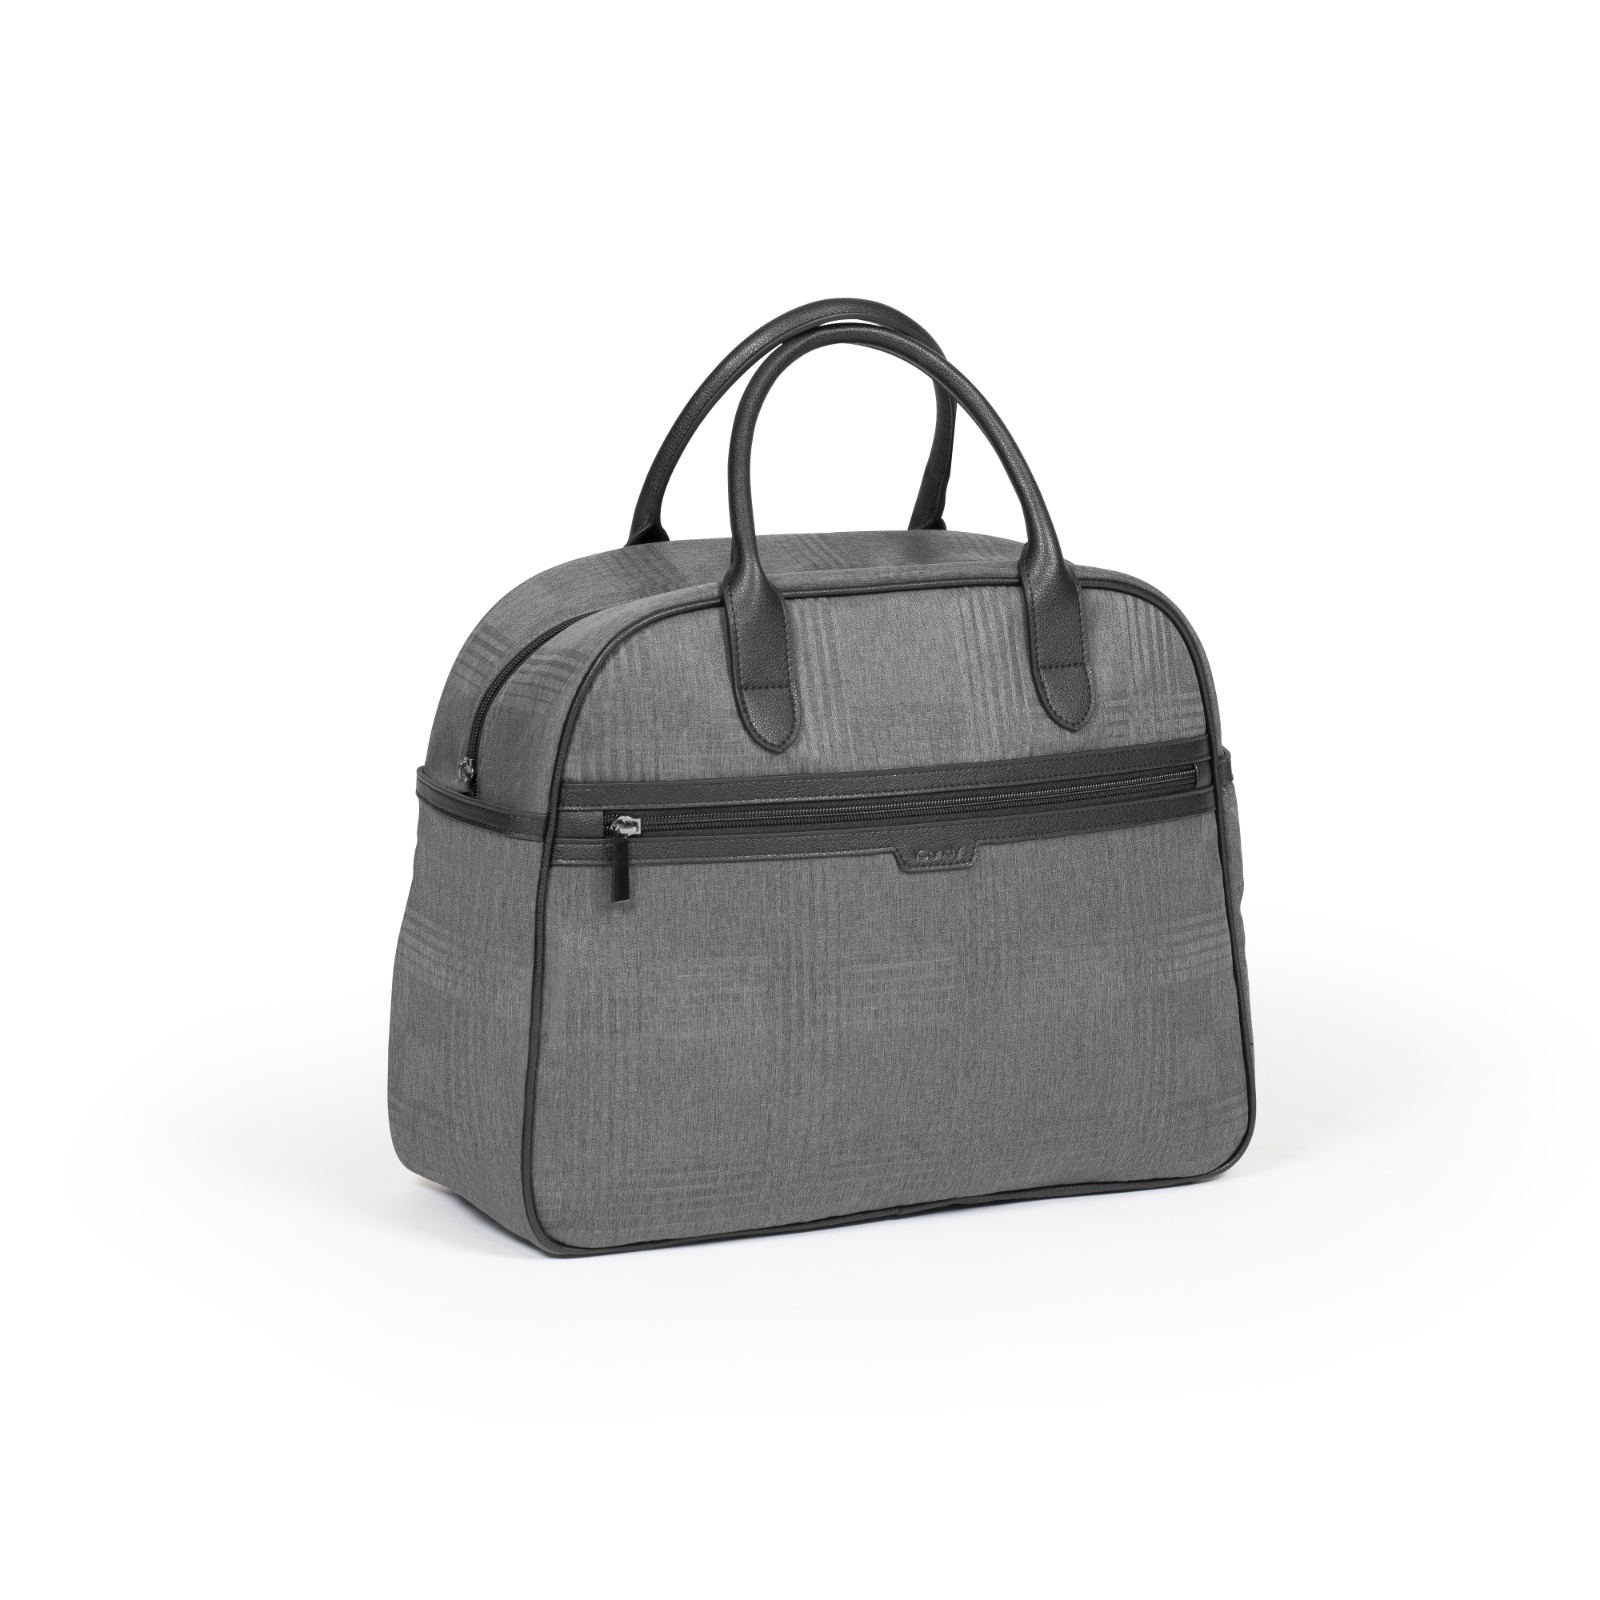 iCandy Peach Bag - Dark Grey Check